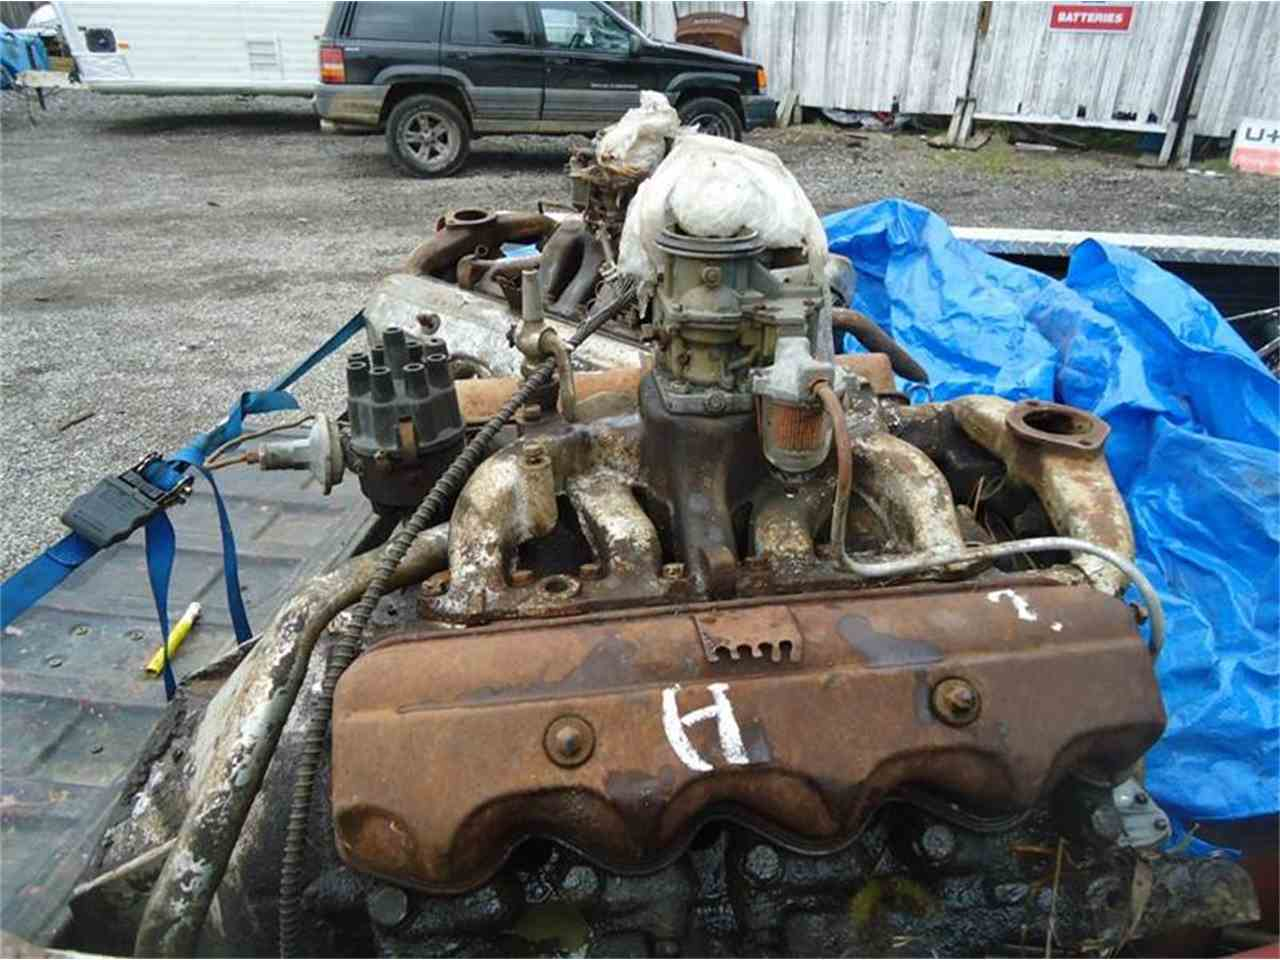 Large Picture of Classic '72 ENG TRANS DODGE /GMC - $600.00 Offered by Marshall Motors - JFEL